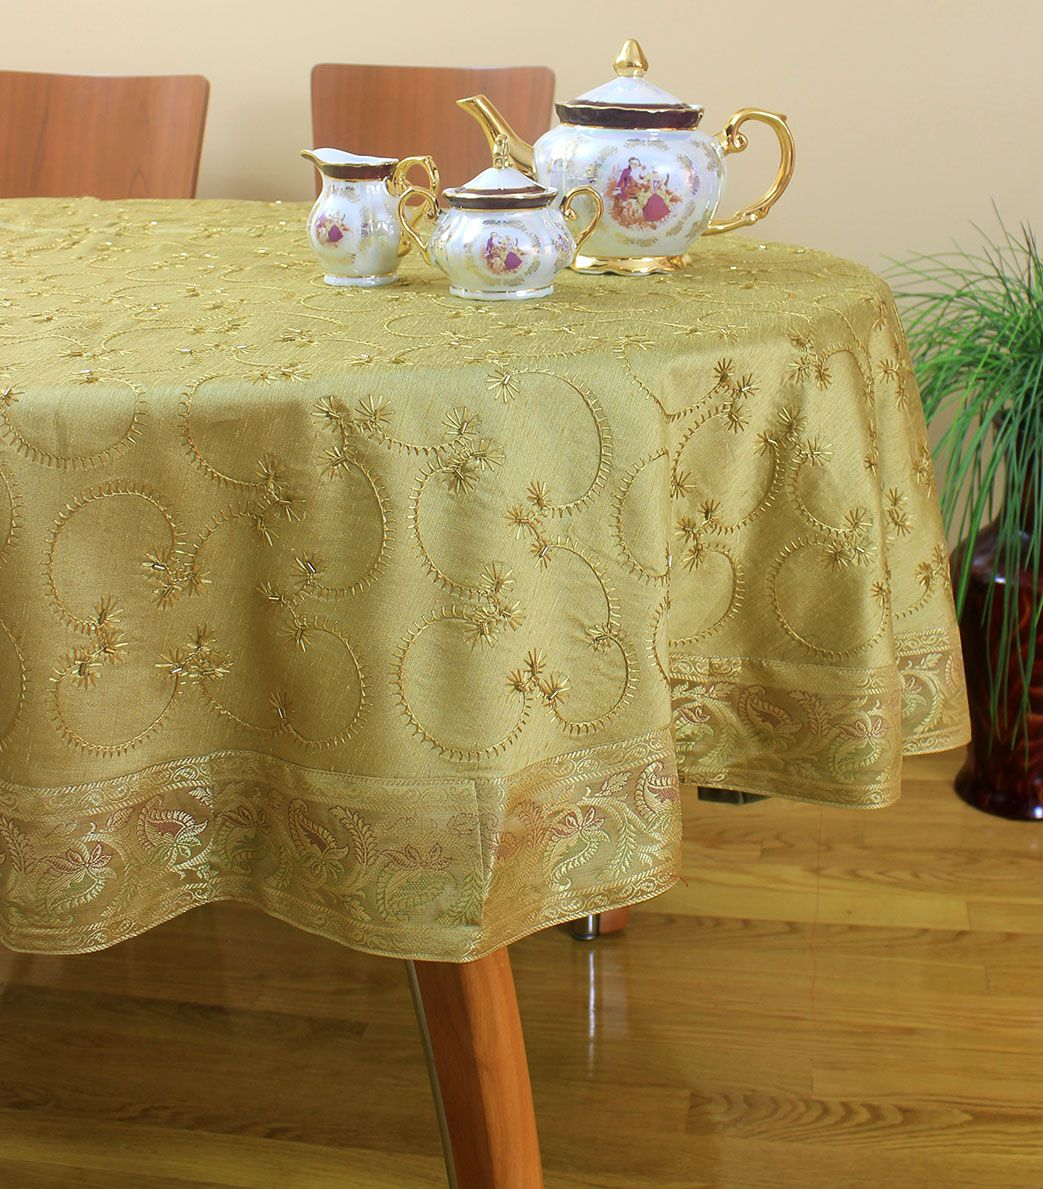 #TableCloth #TableMats #TableRunner #TableLinen Buy Cotton Toda Embroidered  Table Linen, Table